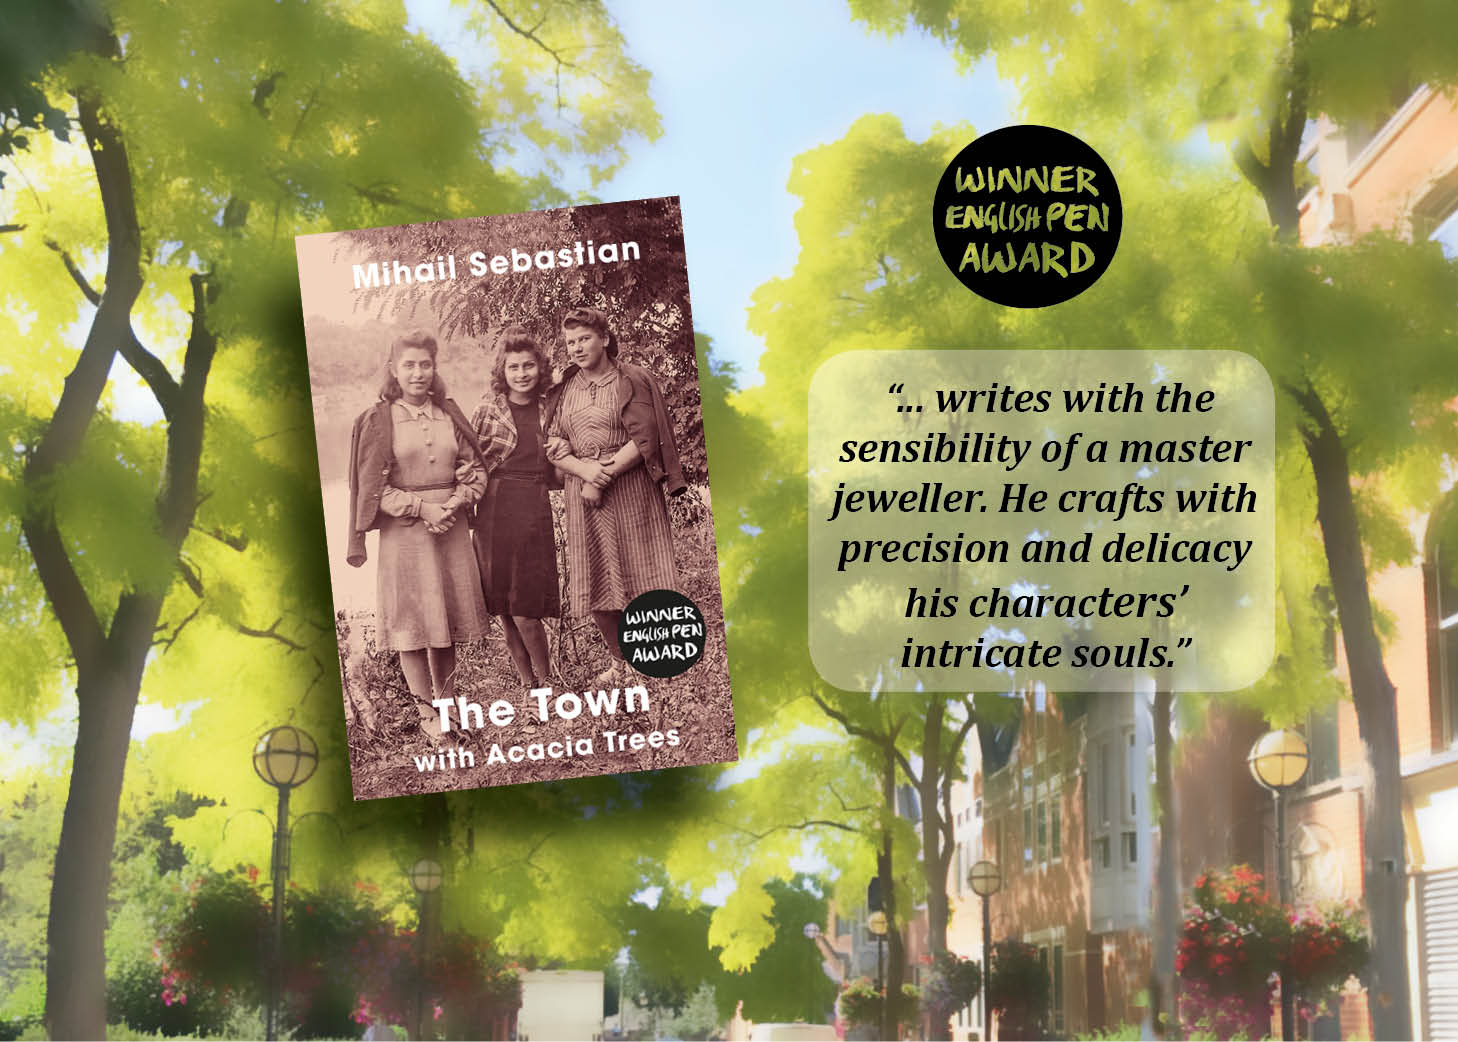 Booklaunch for The Town with Acacia Trees by Mihail Sebastian translated by Gabi Reigh